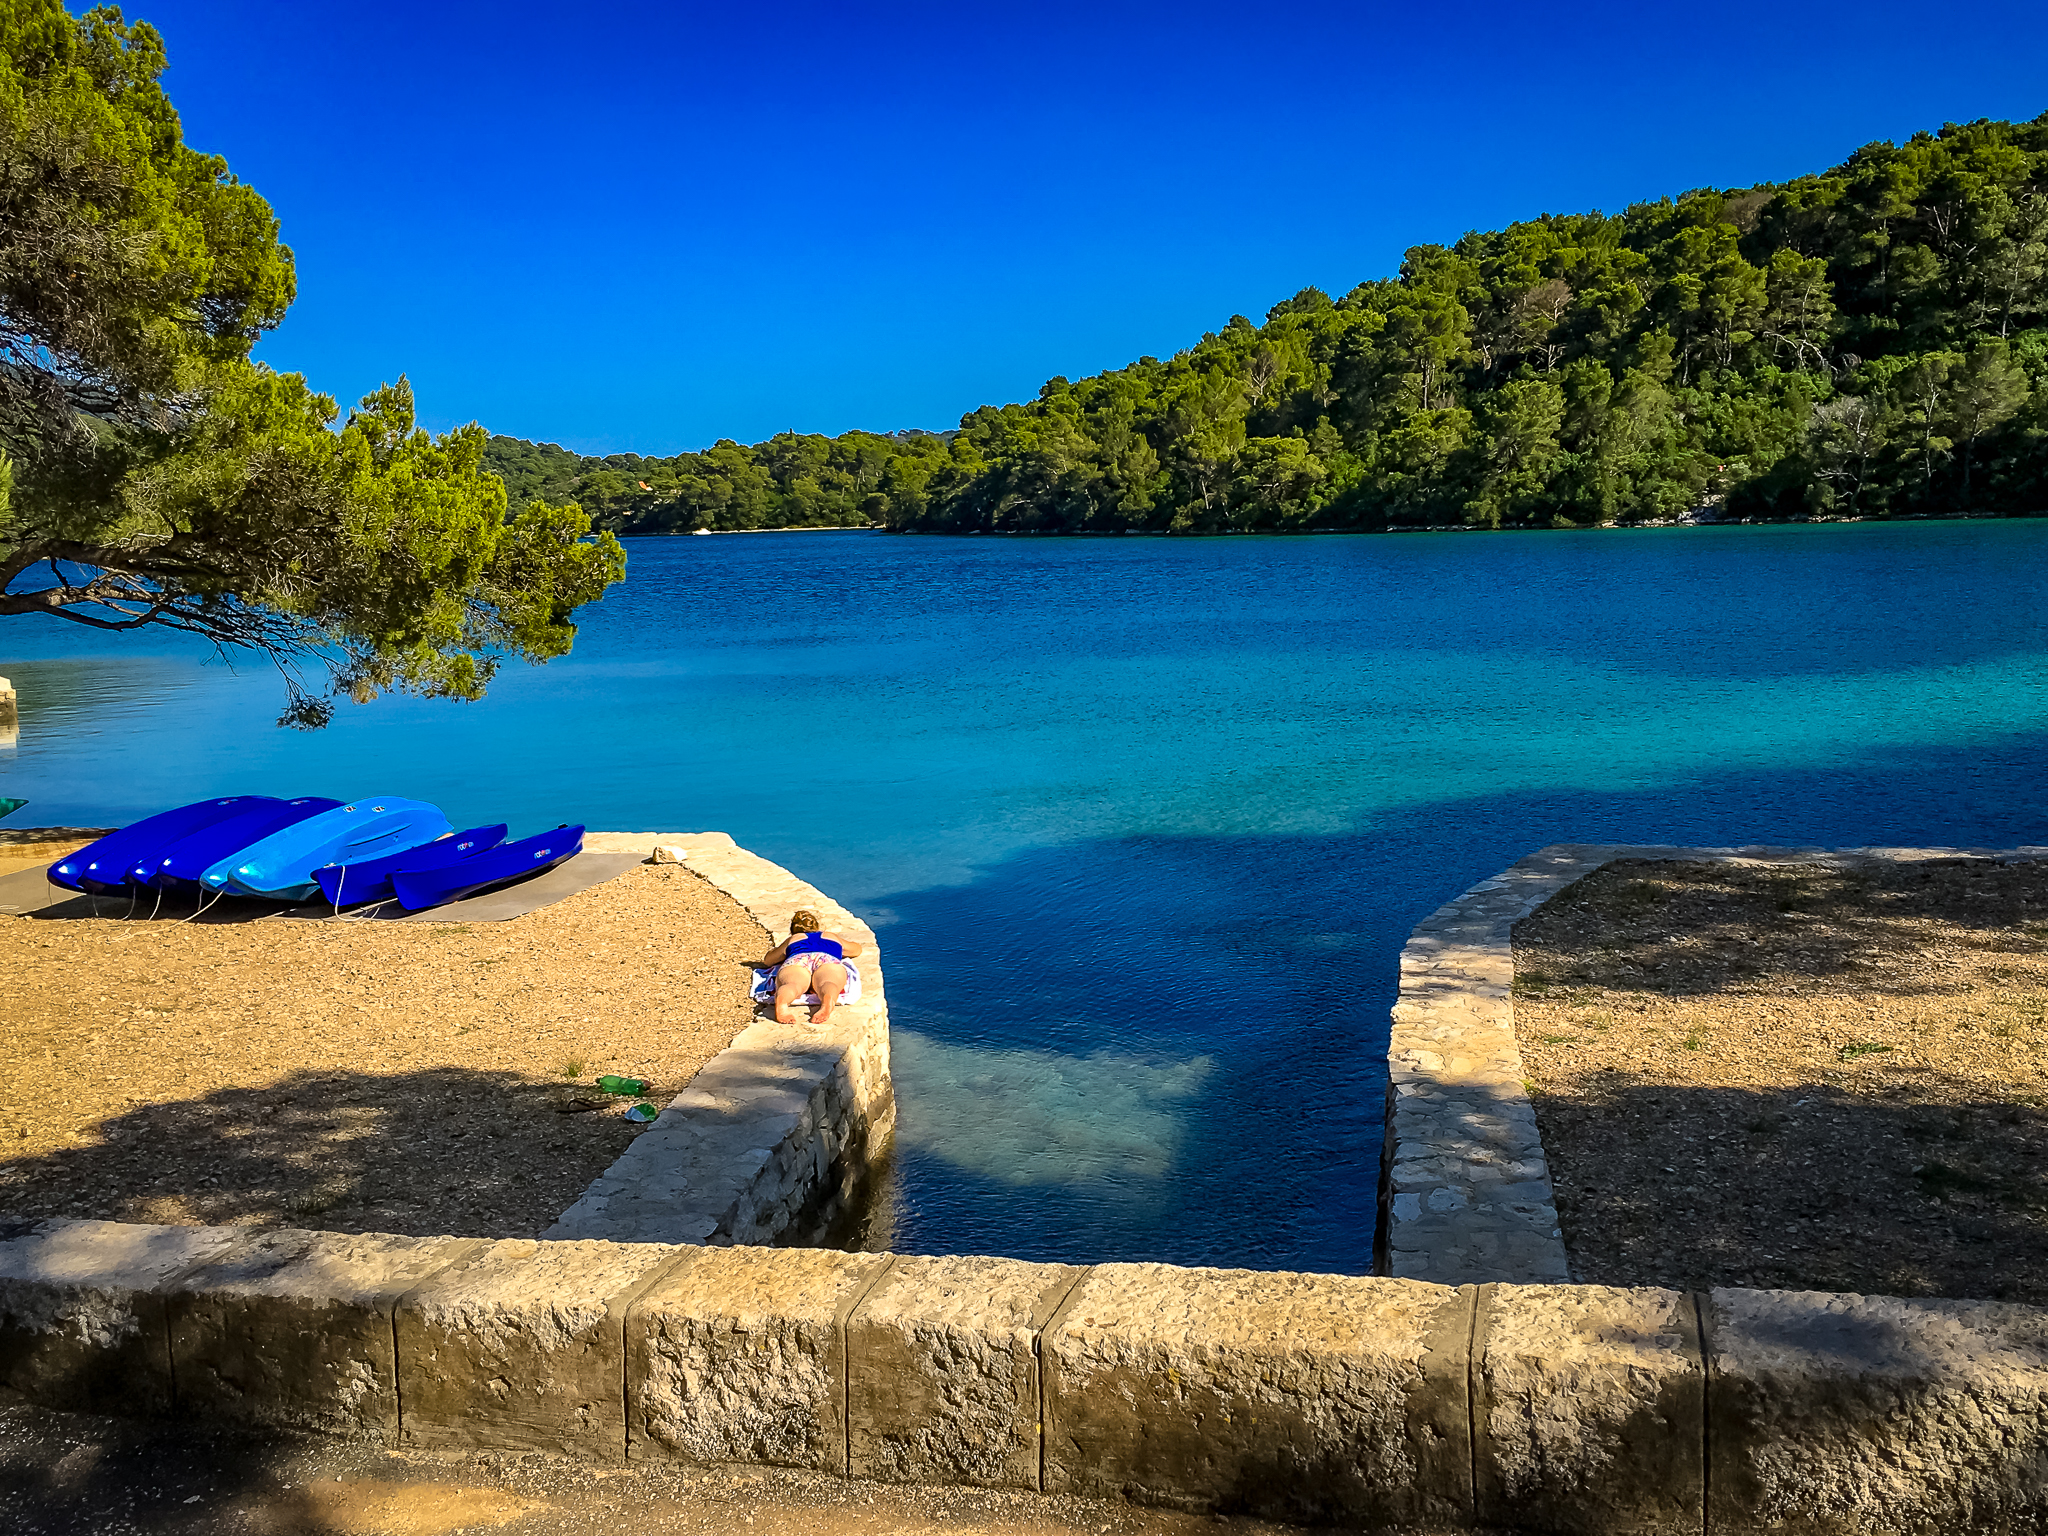 The connection between the larger and the smaller lake in national park mljet